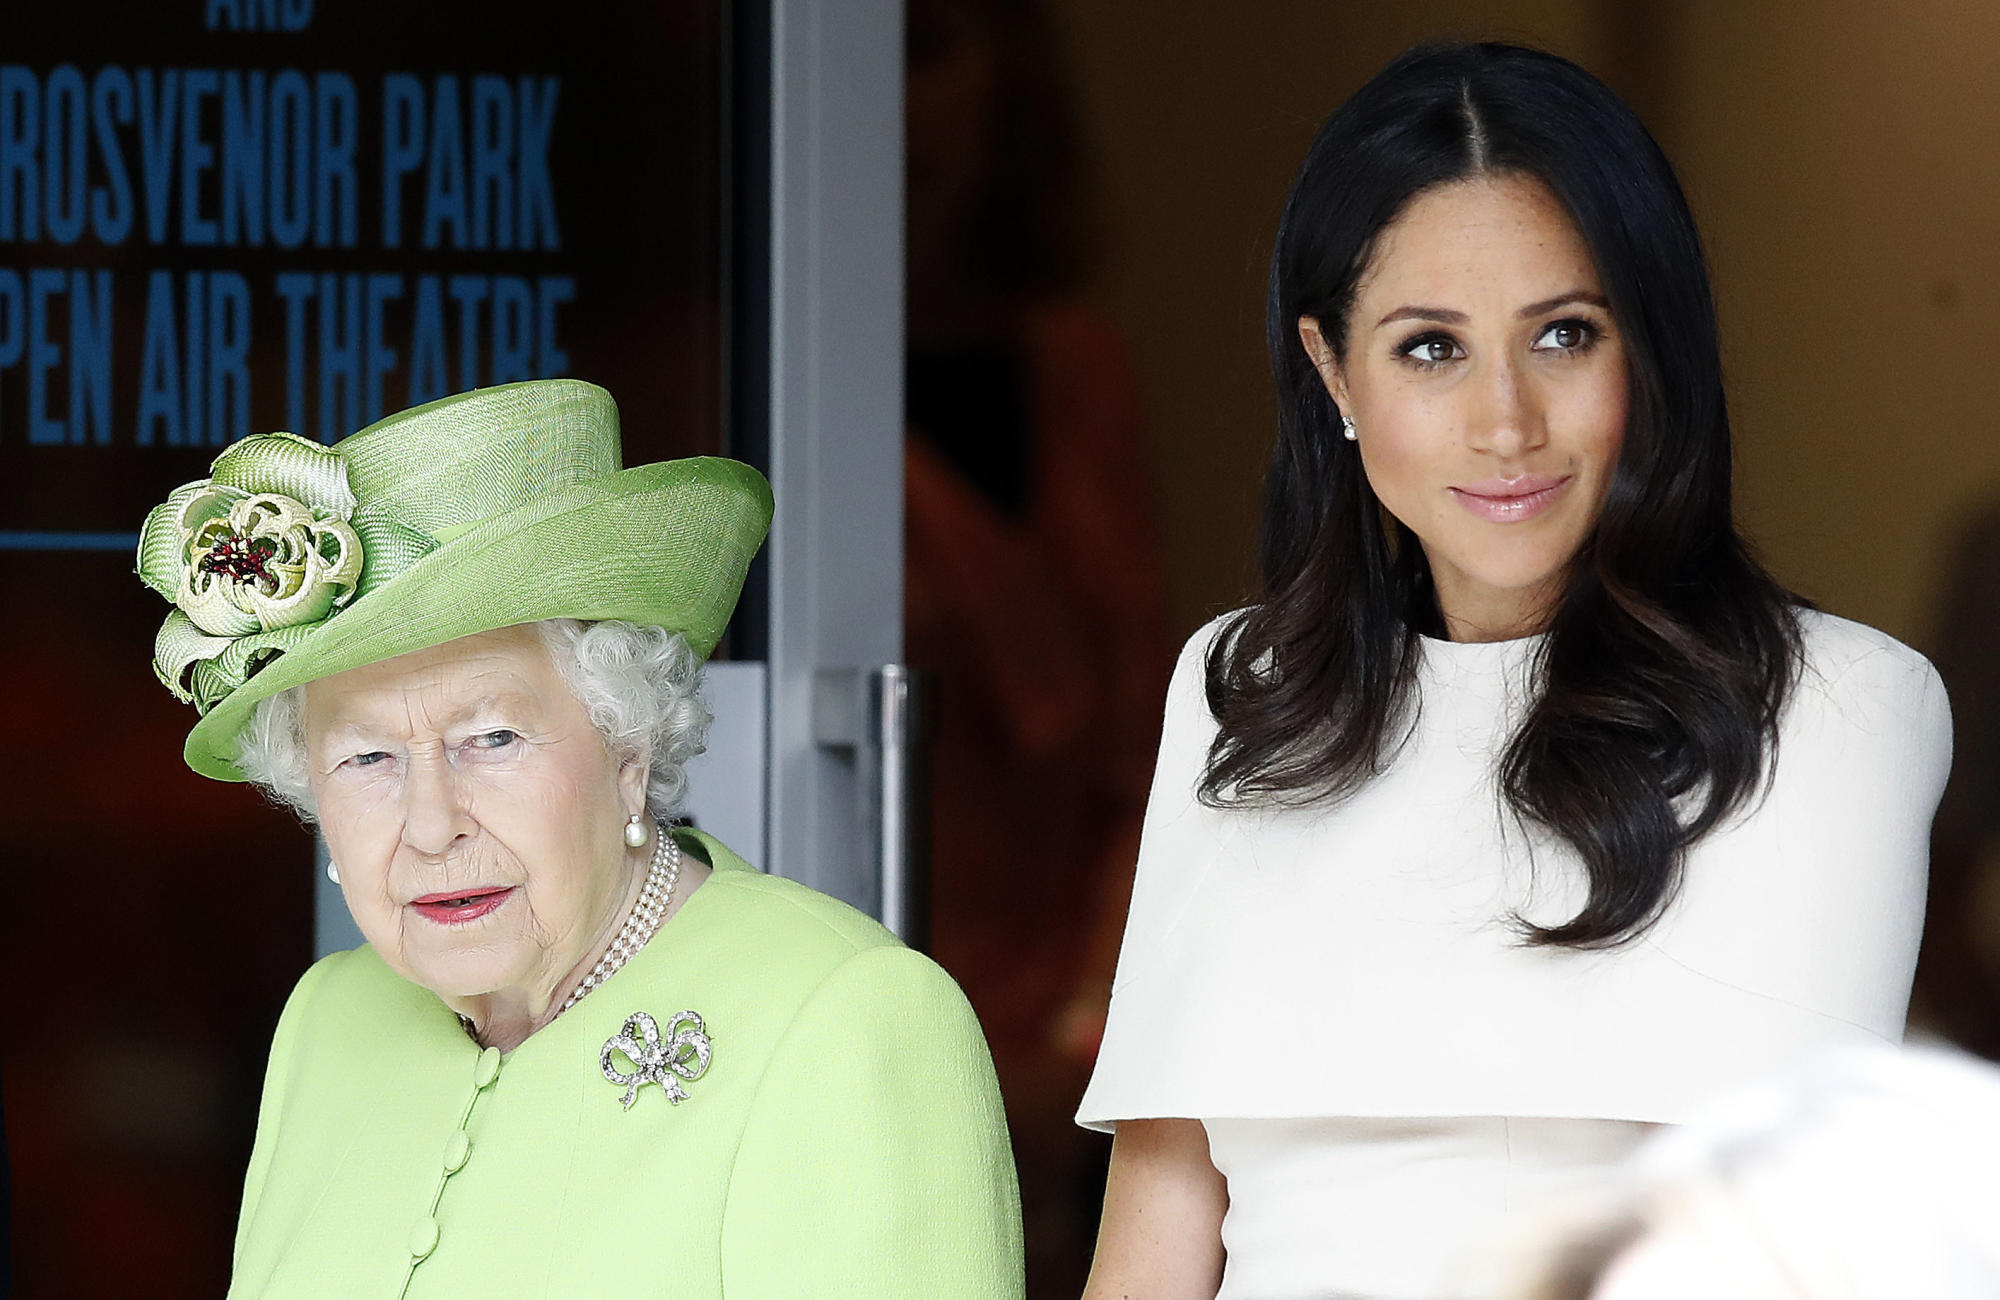 Queen denies holding any copyright over controversial letter Meghan Markle wrote to her father